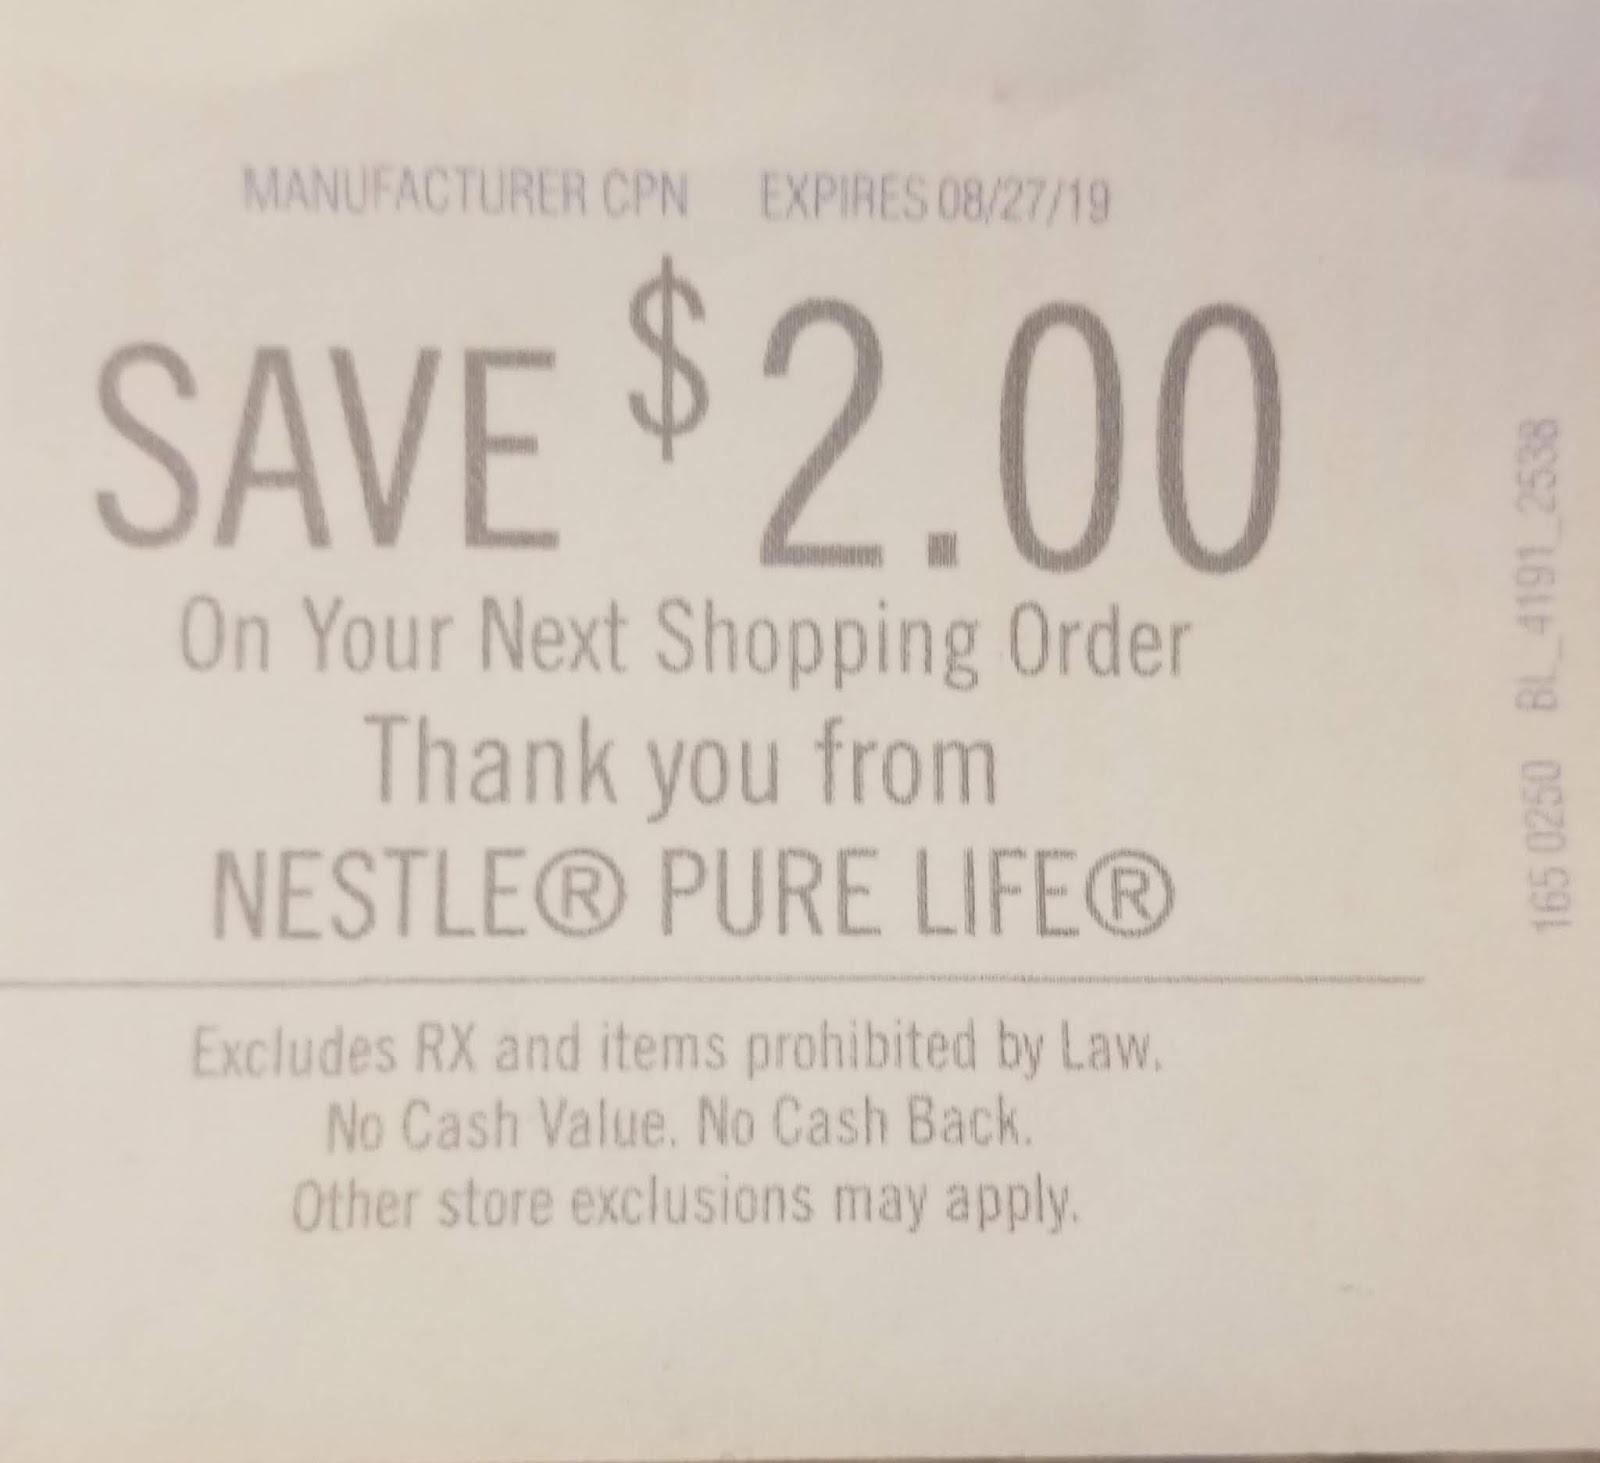 UPDATE FREE Nestle Pure Life Water At Harris Teeter Super